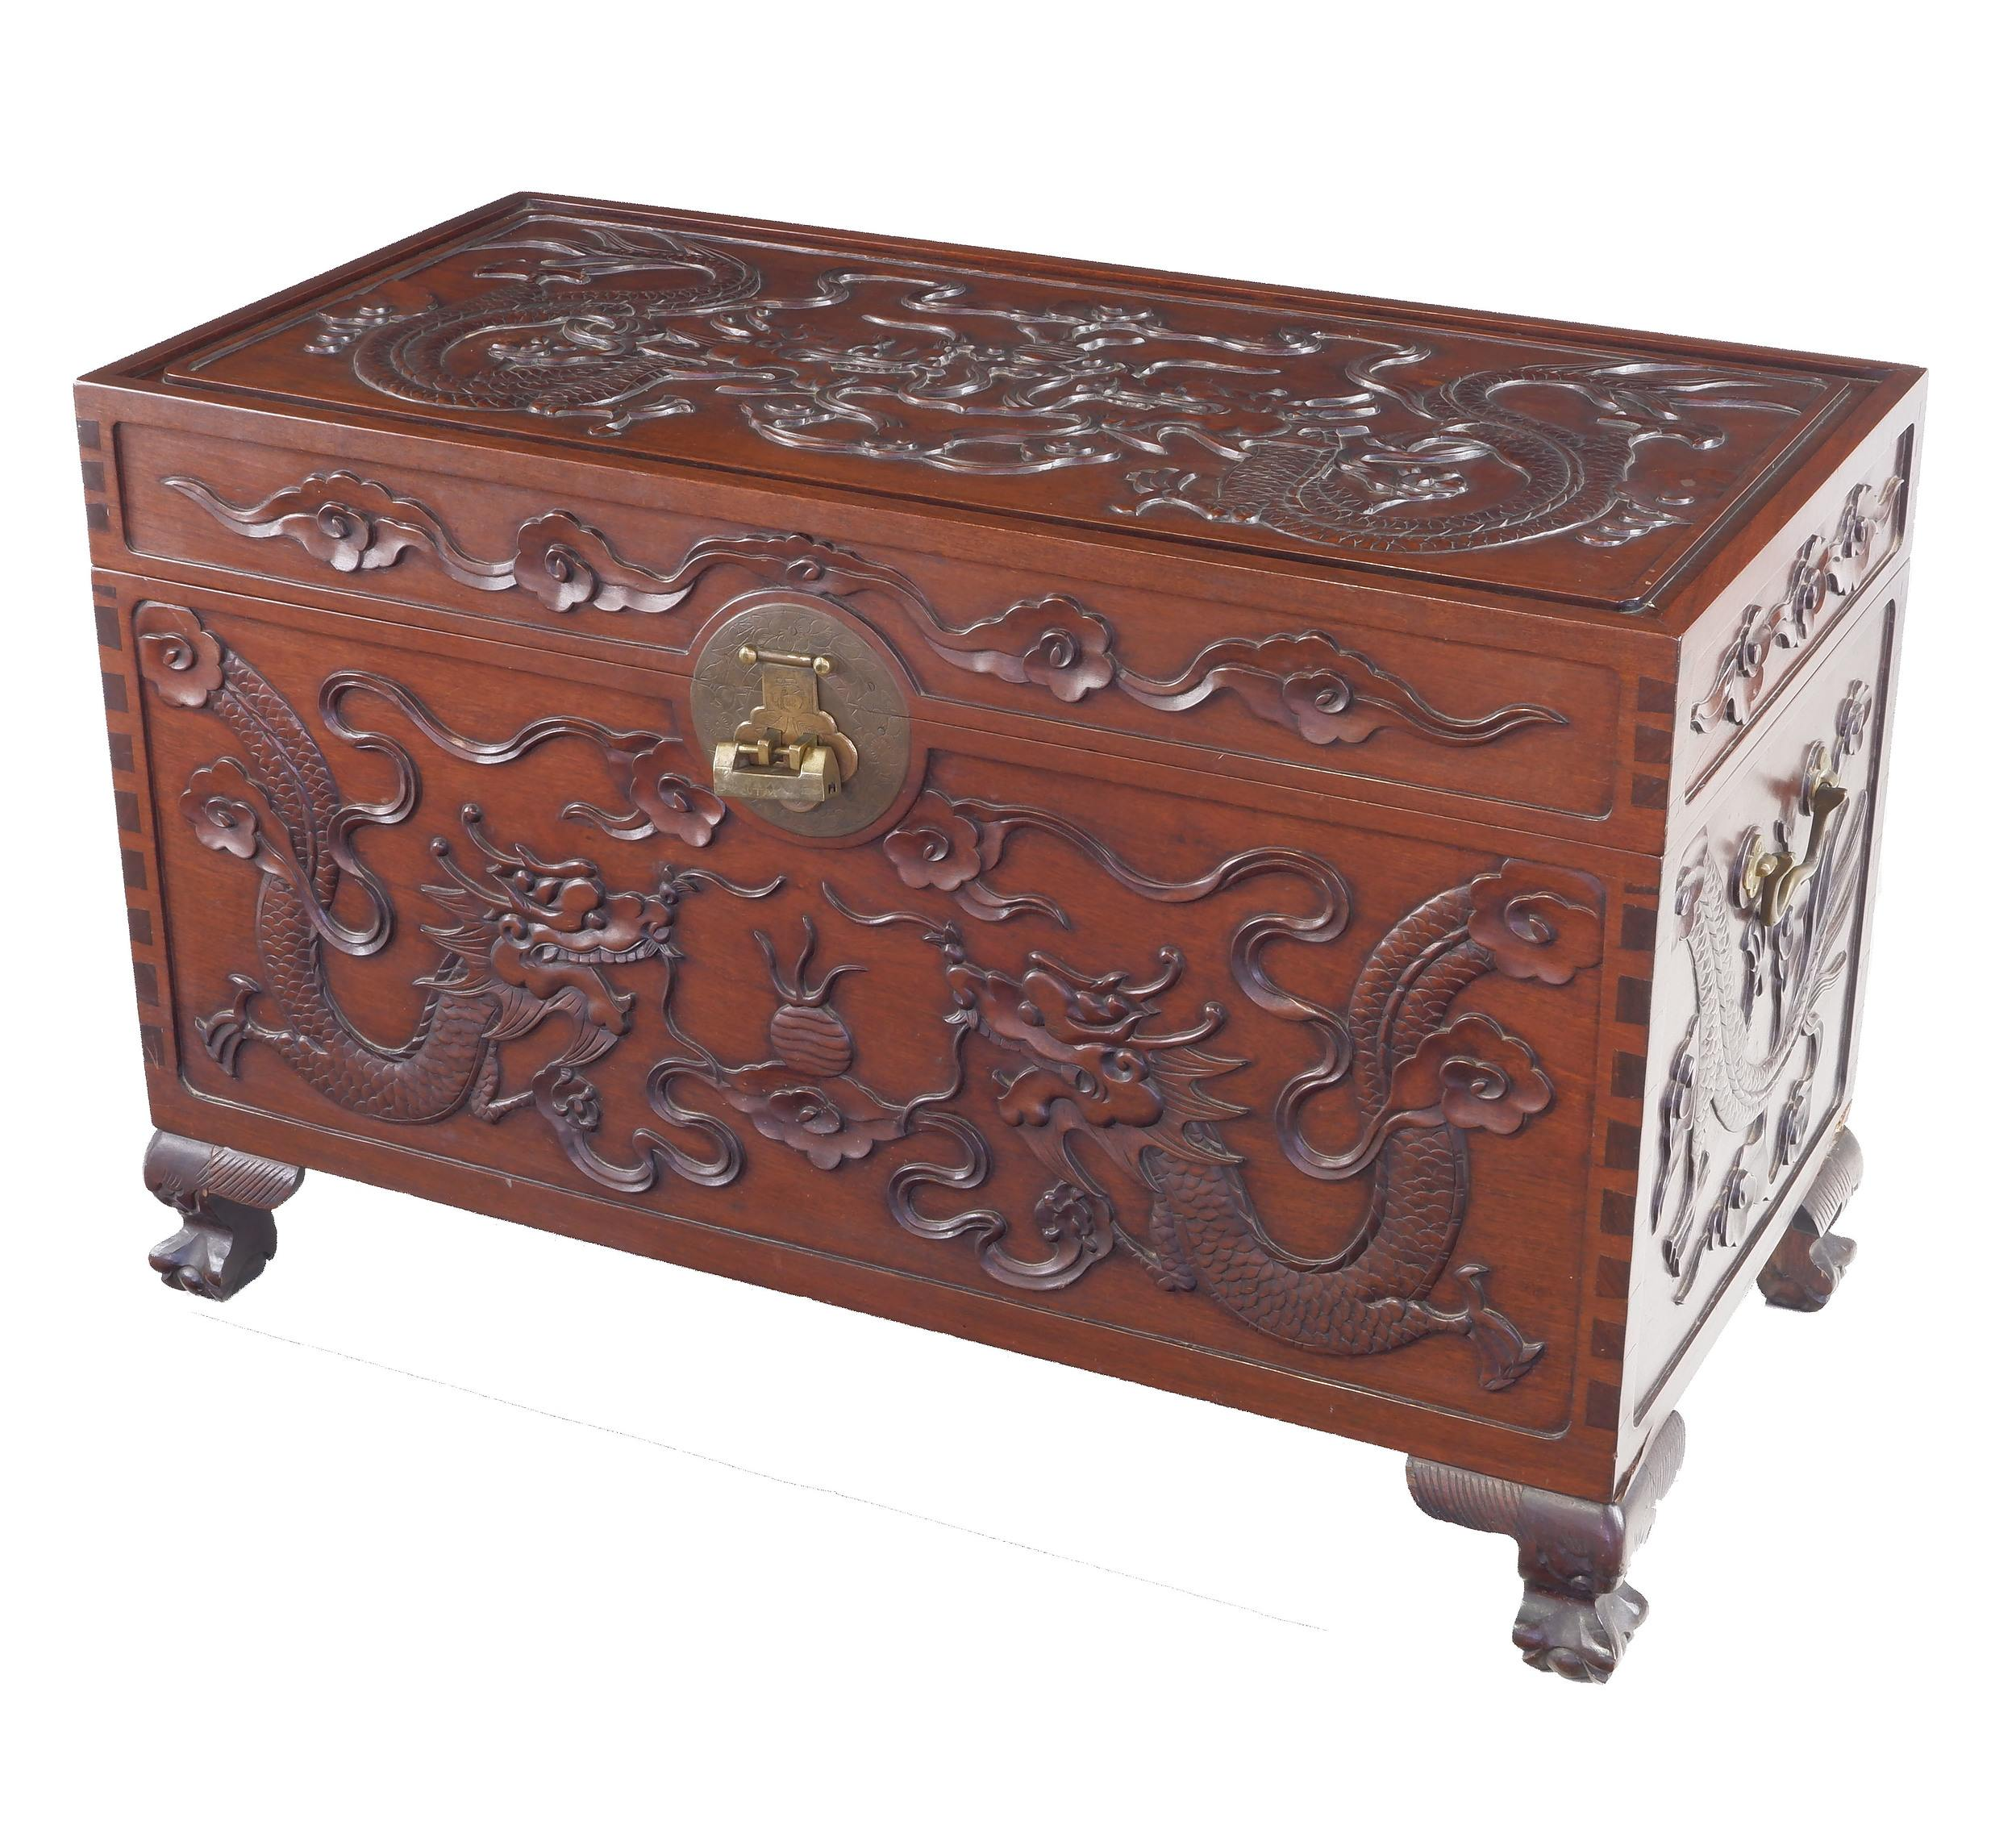 'Good Chinese Dragon Carved Camphorwood Chest Early 20th Century'